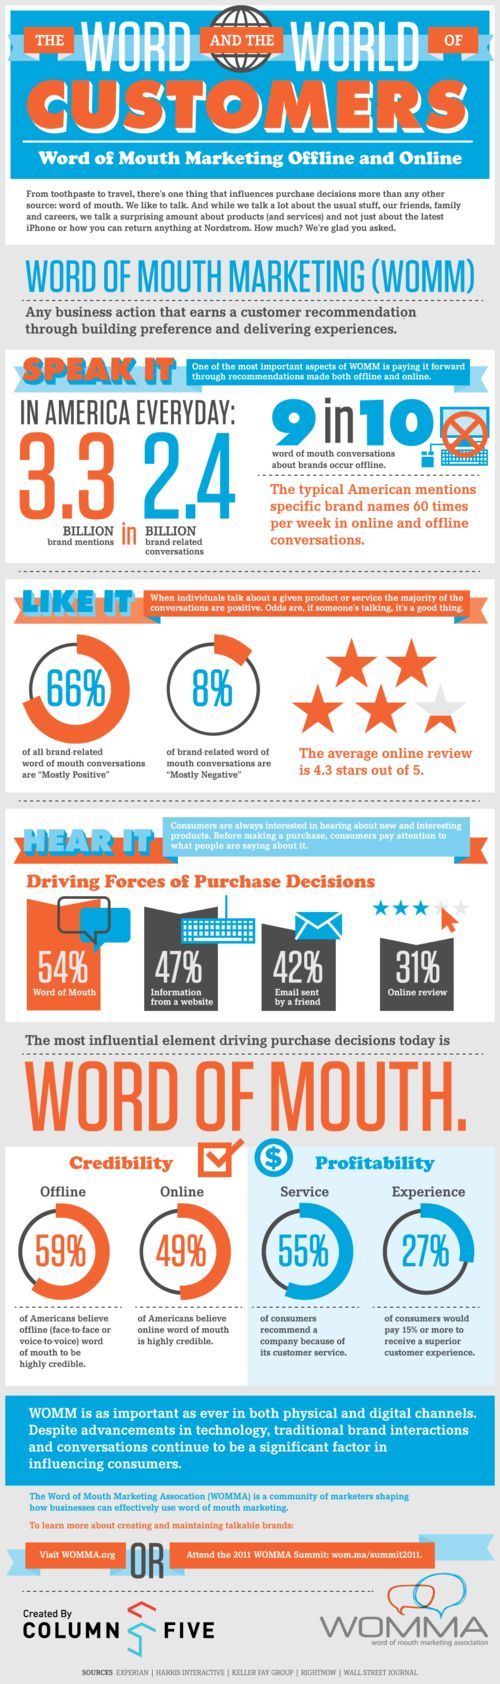 Advertising vs word of mouth     #wommarketing #marketing #advertising